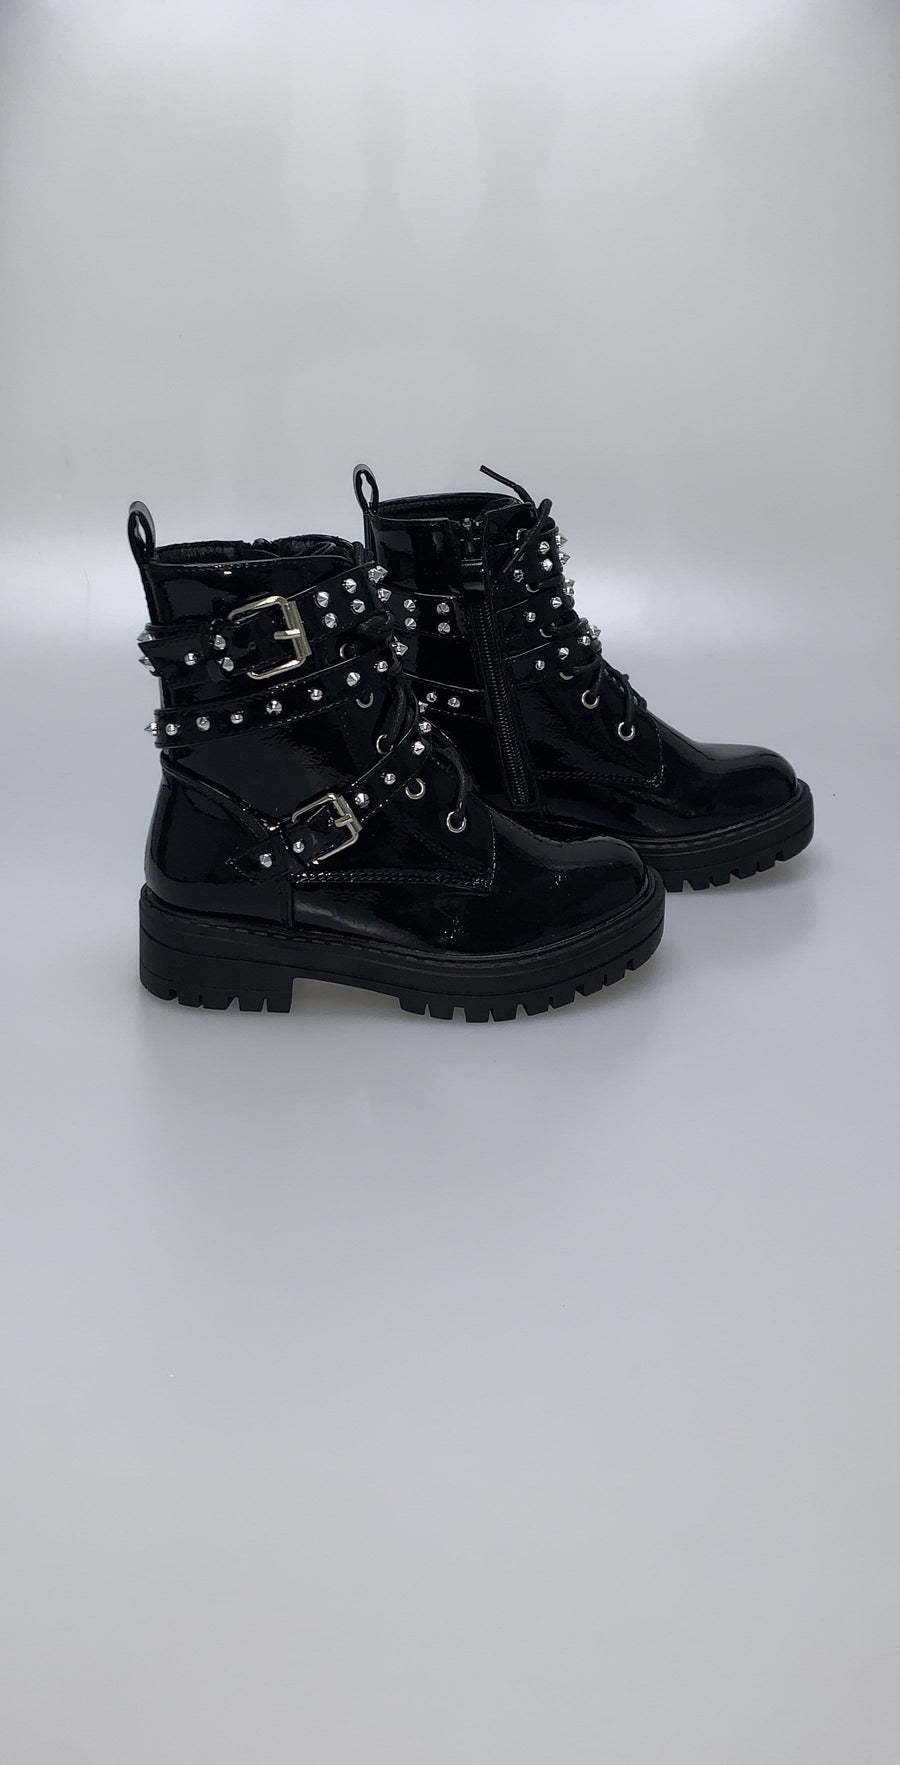 Carly Chunky Studded Ankle Boots With Buckles Black Faux Leather Patent